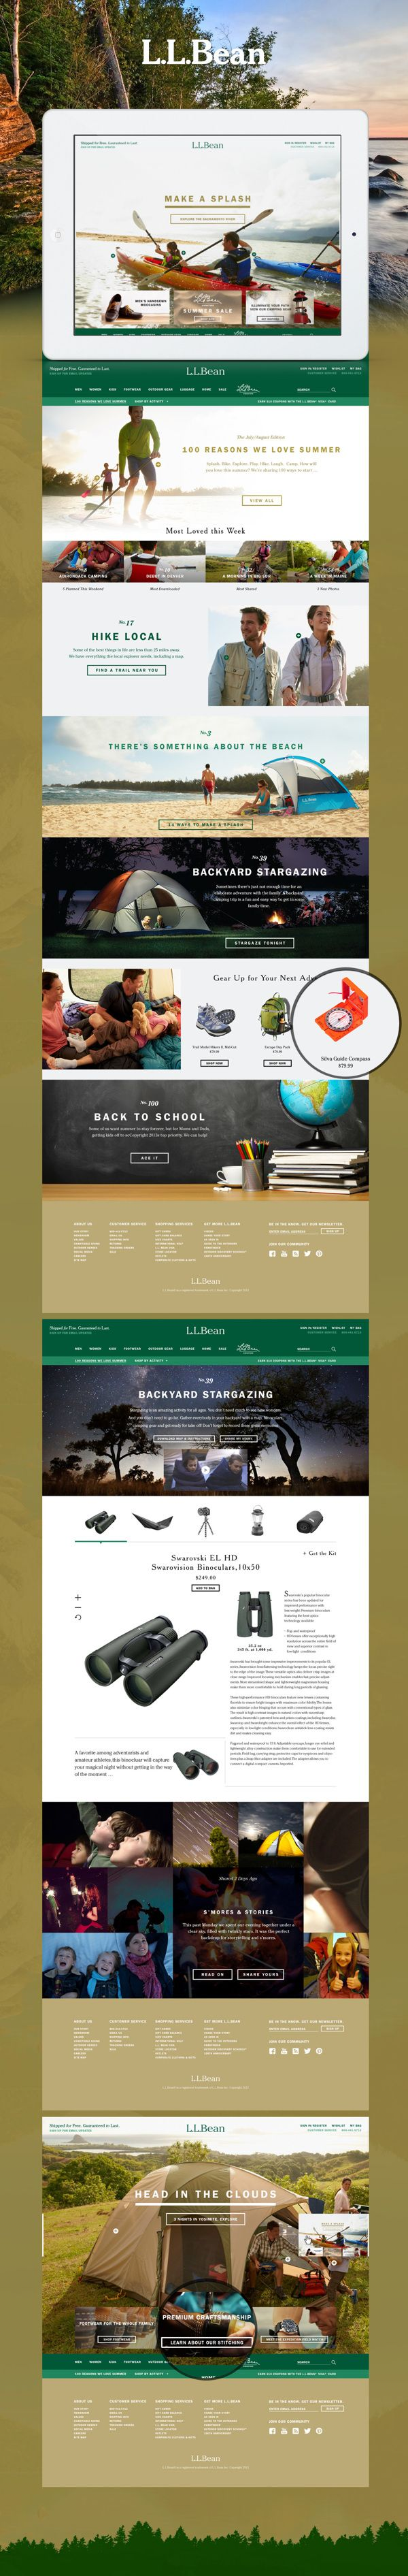 #mobile #tablet #webdesign #ui #llbean